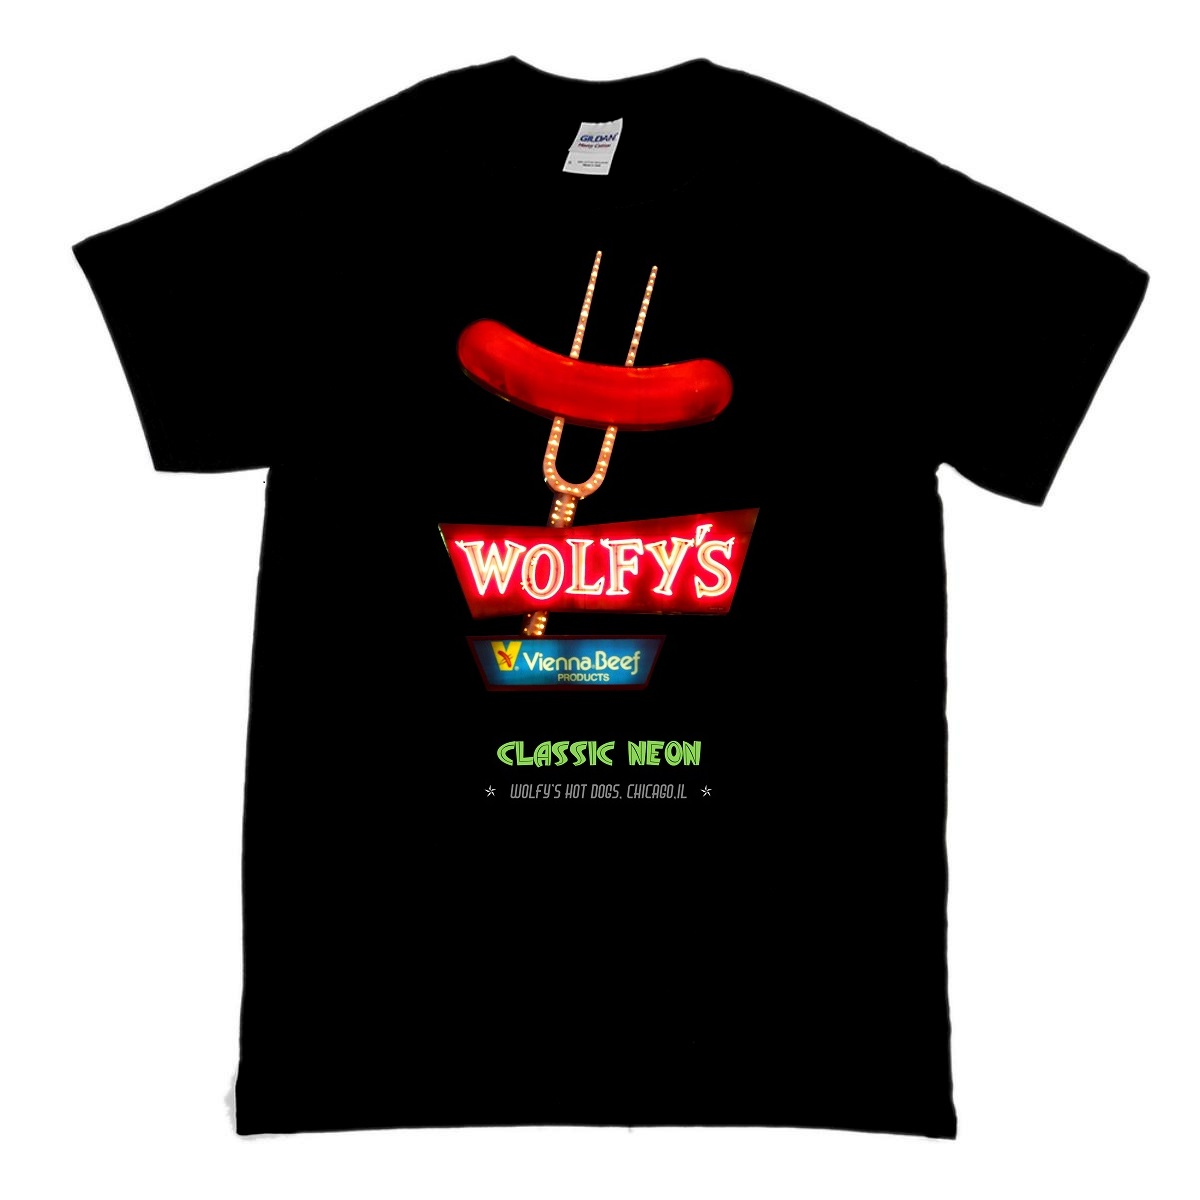 This is a classic t-shirt with a design featuring the vintage Wolfy's neon sign